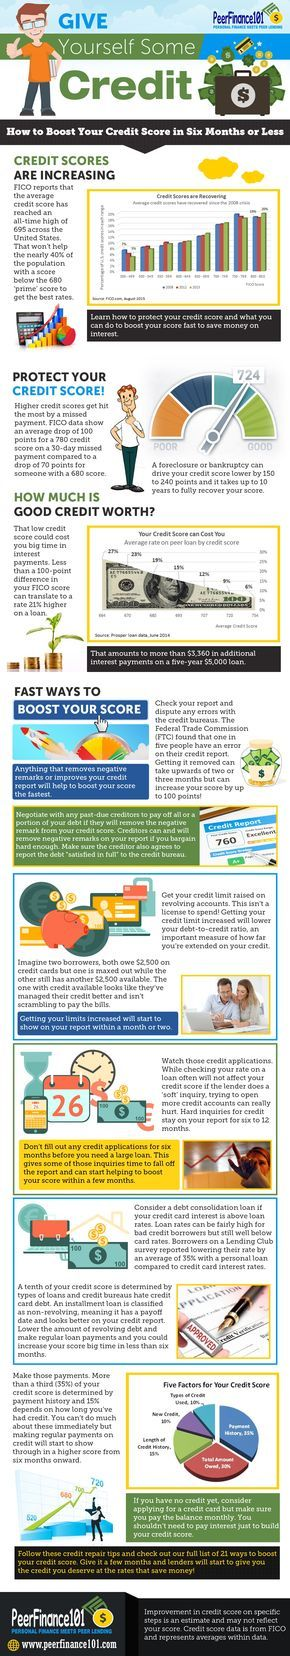 My Favorite Ways To Fix Your Credit Score Fast Plus The Full List Of 21 Steps I Used To Add 140 Points To My Fi Bad Credit Score Credit Score How